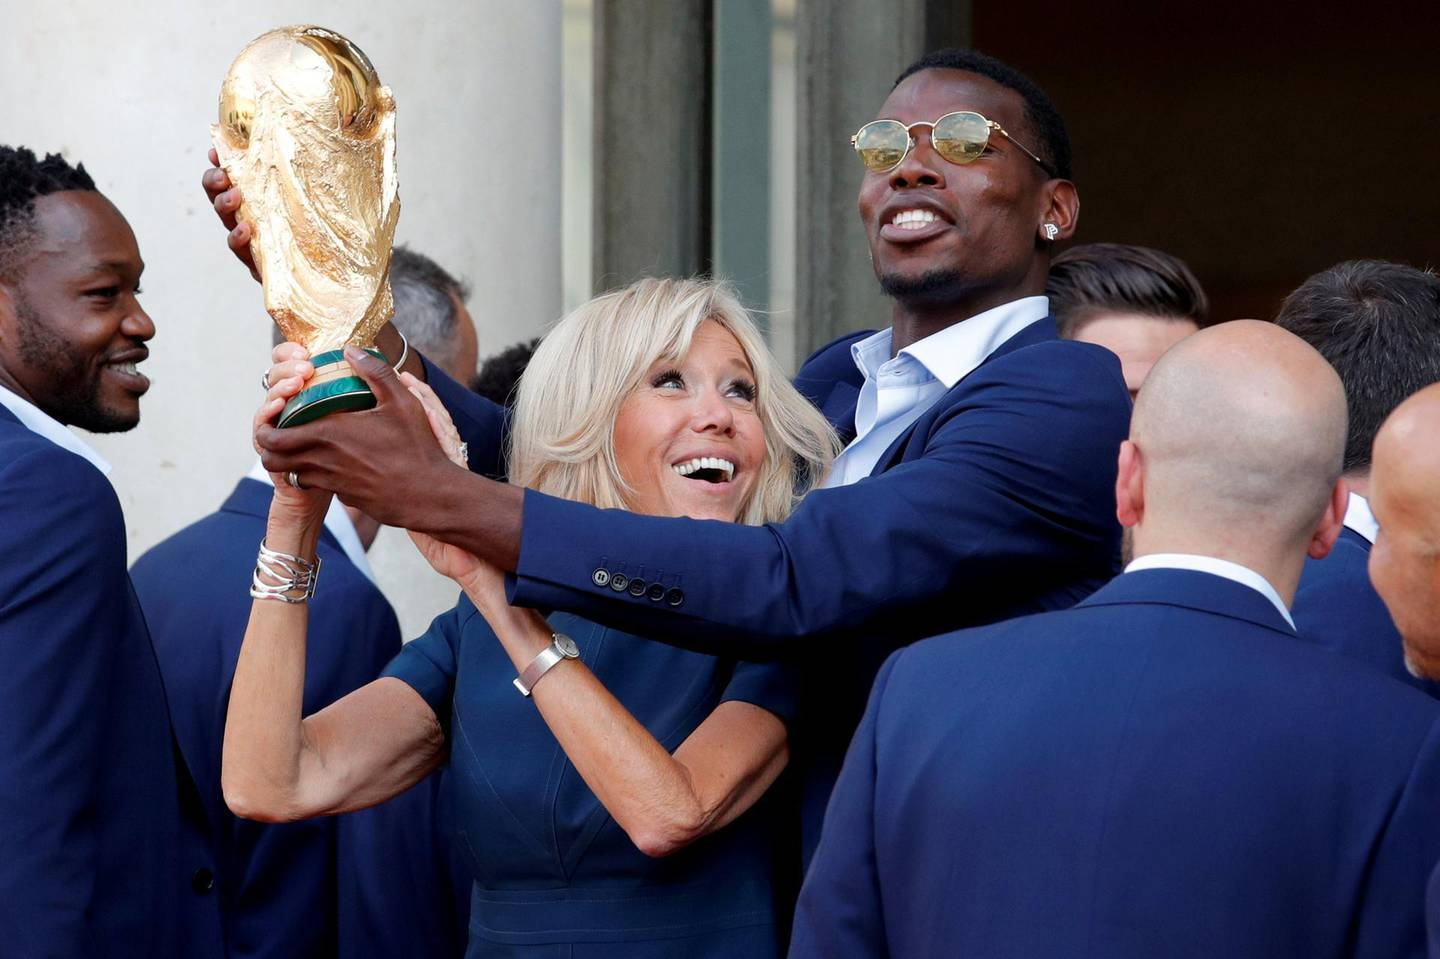 Brigitte Macron, the wife of French President Emmanuel Macron (not pictured), and player Paul Pogba hold the trophy before a reception to honour the France soccer team after their victory in the 2018 Russia Soccer World Cup, at the Elysee Palace in Paris, France, July 16, 2018.   REUTERS/Philippe Wojazer     TPX IMAGES OF THE DAY